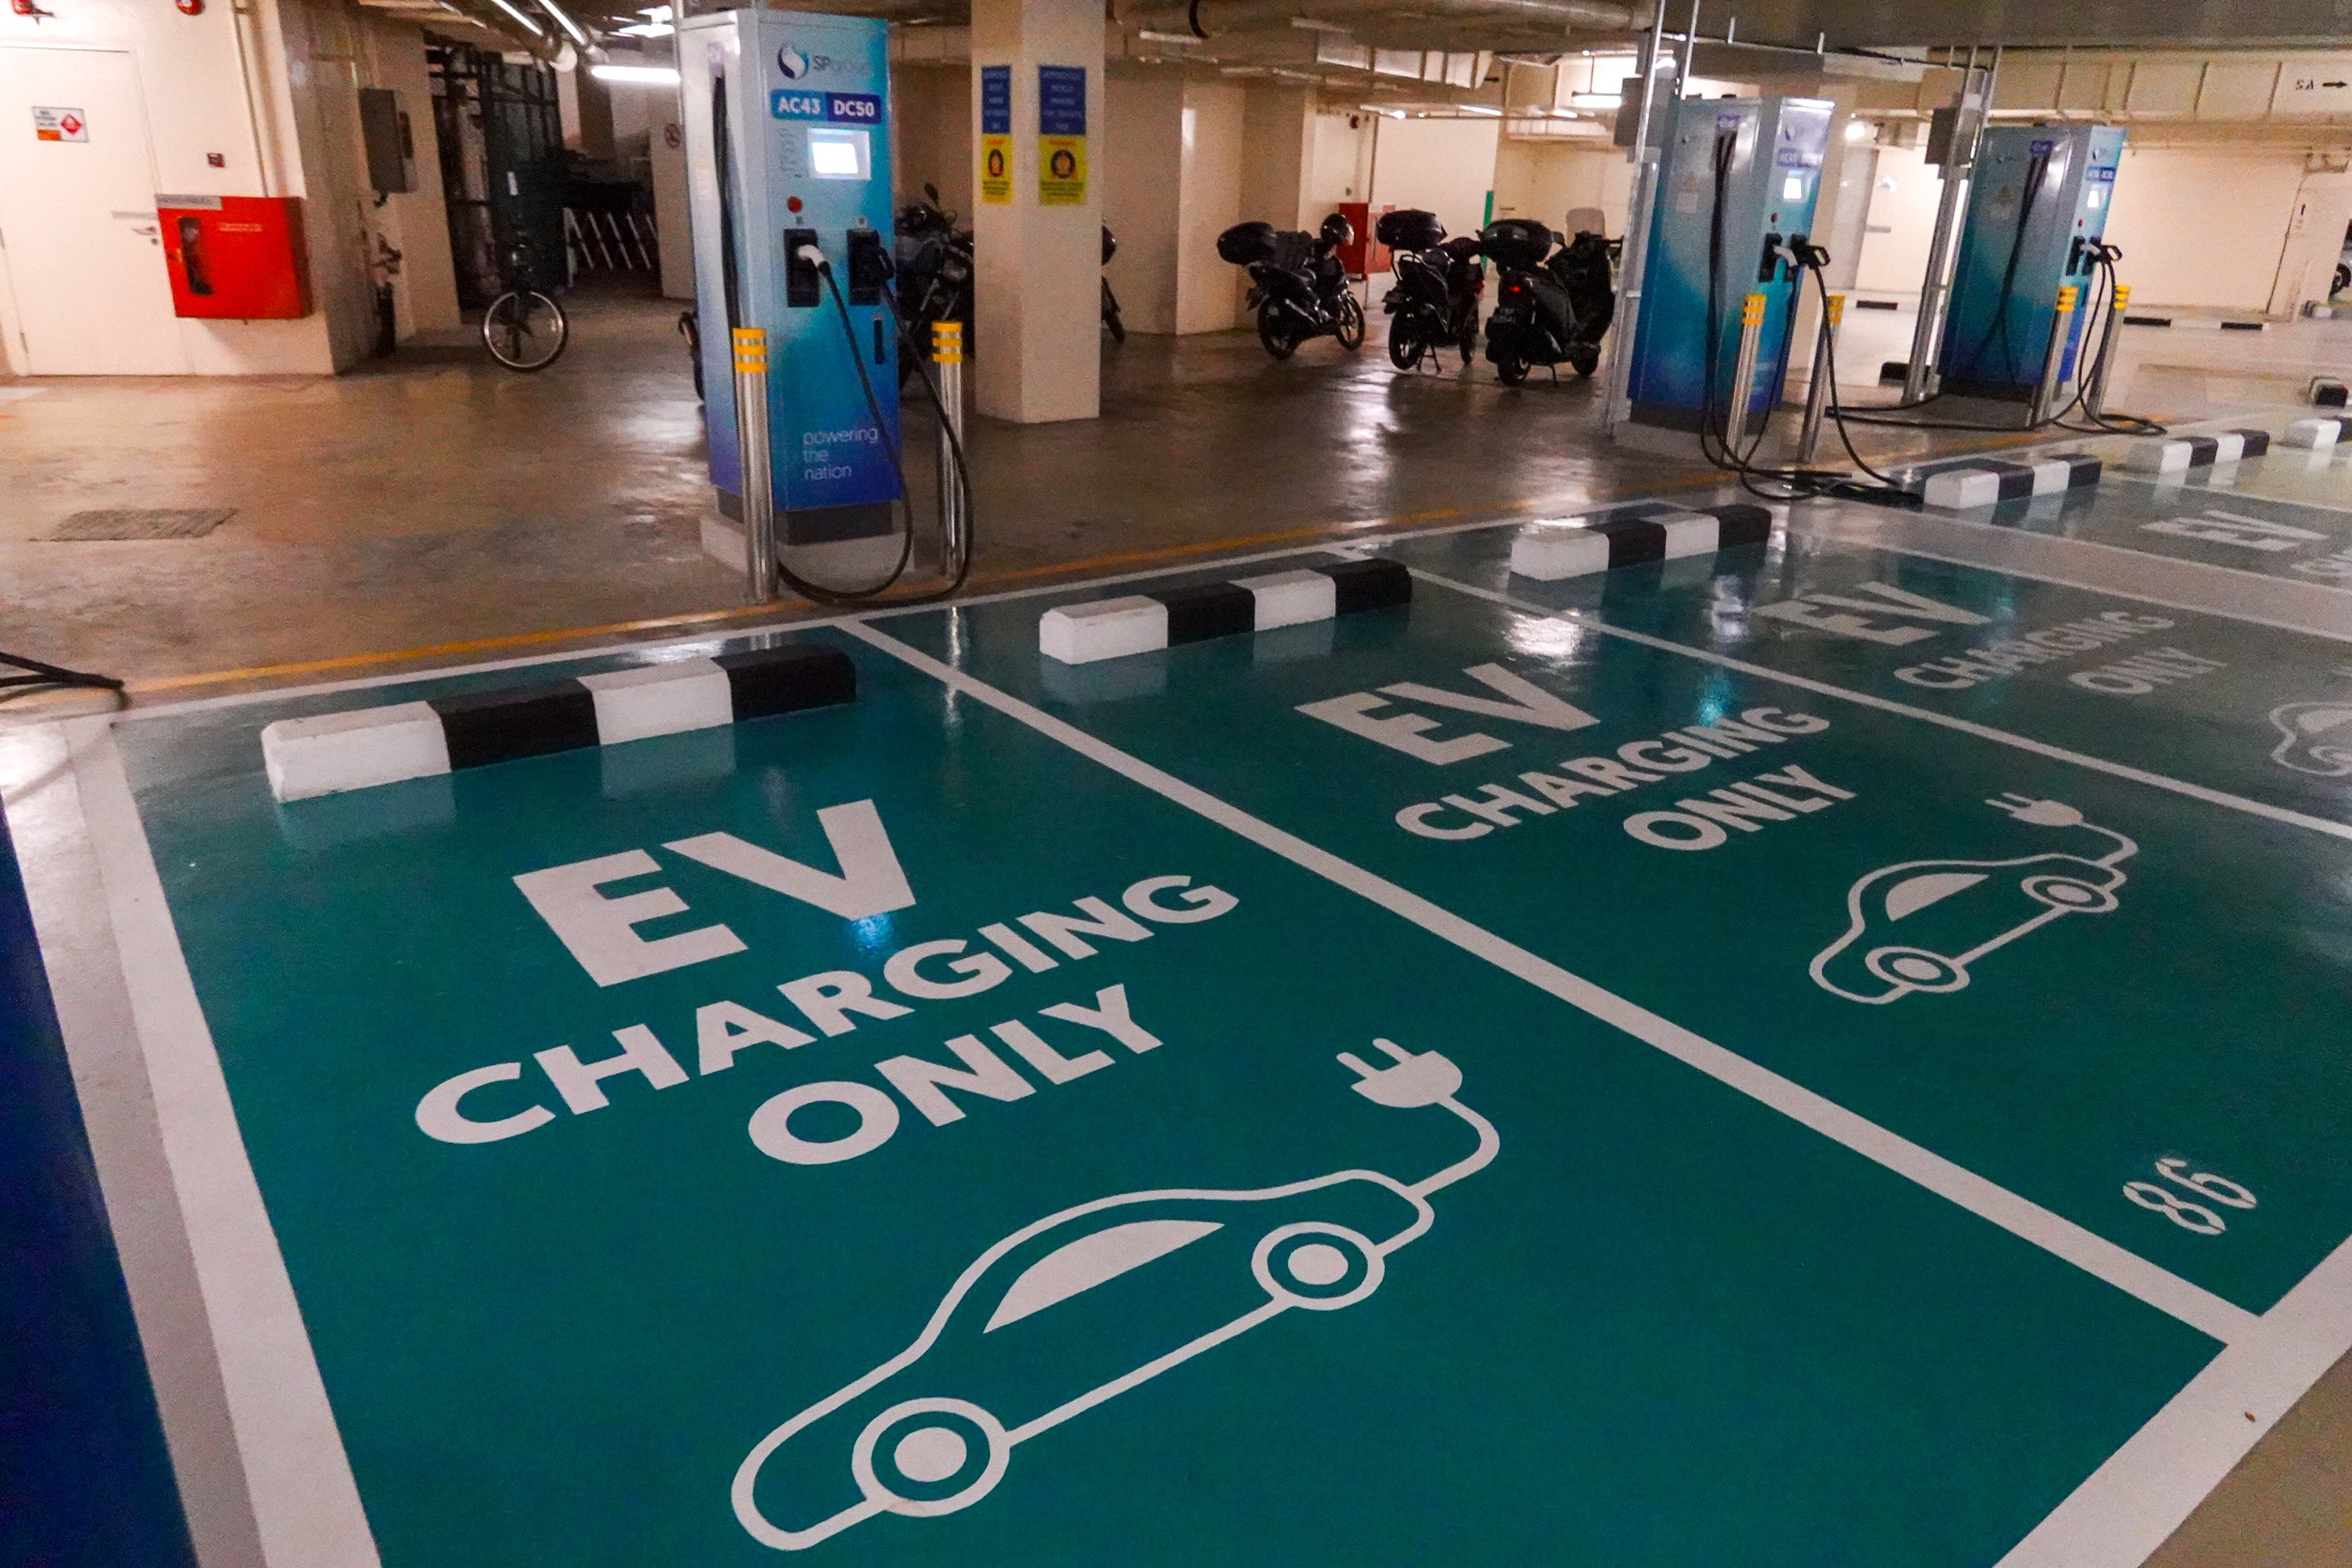 The vehicle-to-grid solution could find its way to Singapore sooner than later as SP Group, which aims to build the largest public EV charging network here, is already piloting it. — Photo by Raj Nadarajan for TODAY